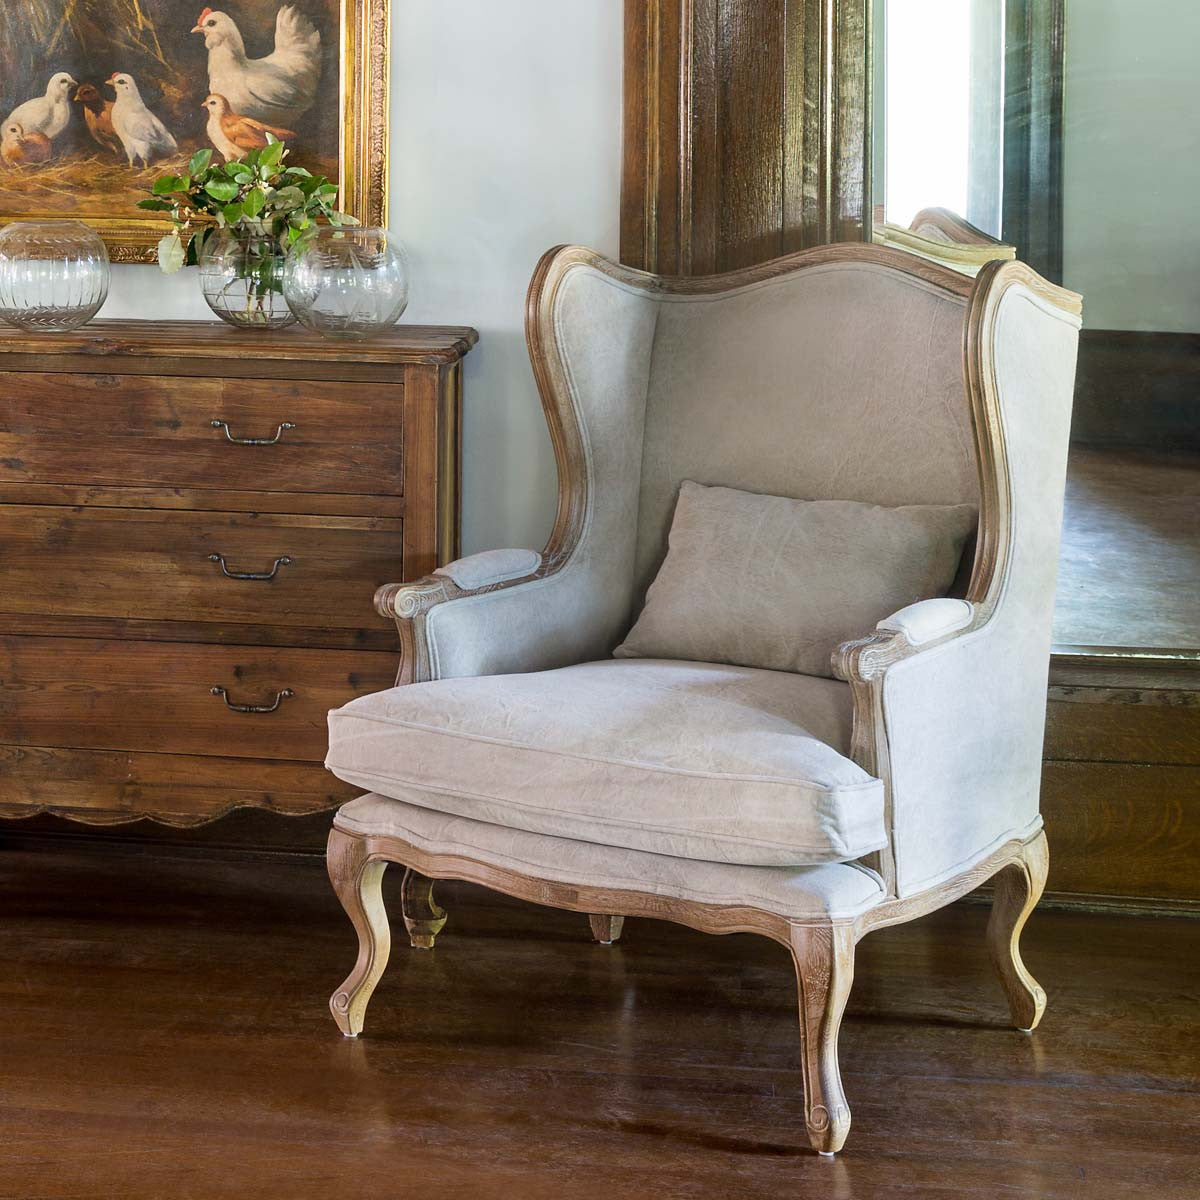 Lovecup Farmhouse Wingback Chair L656